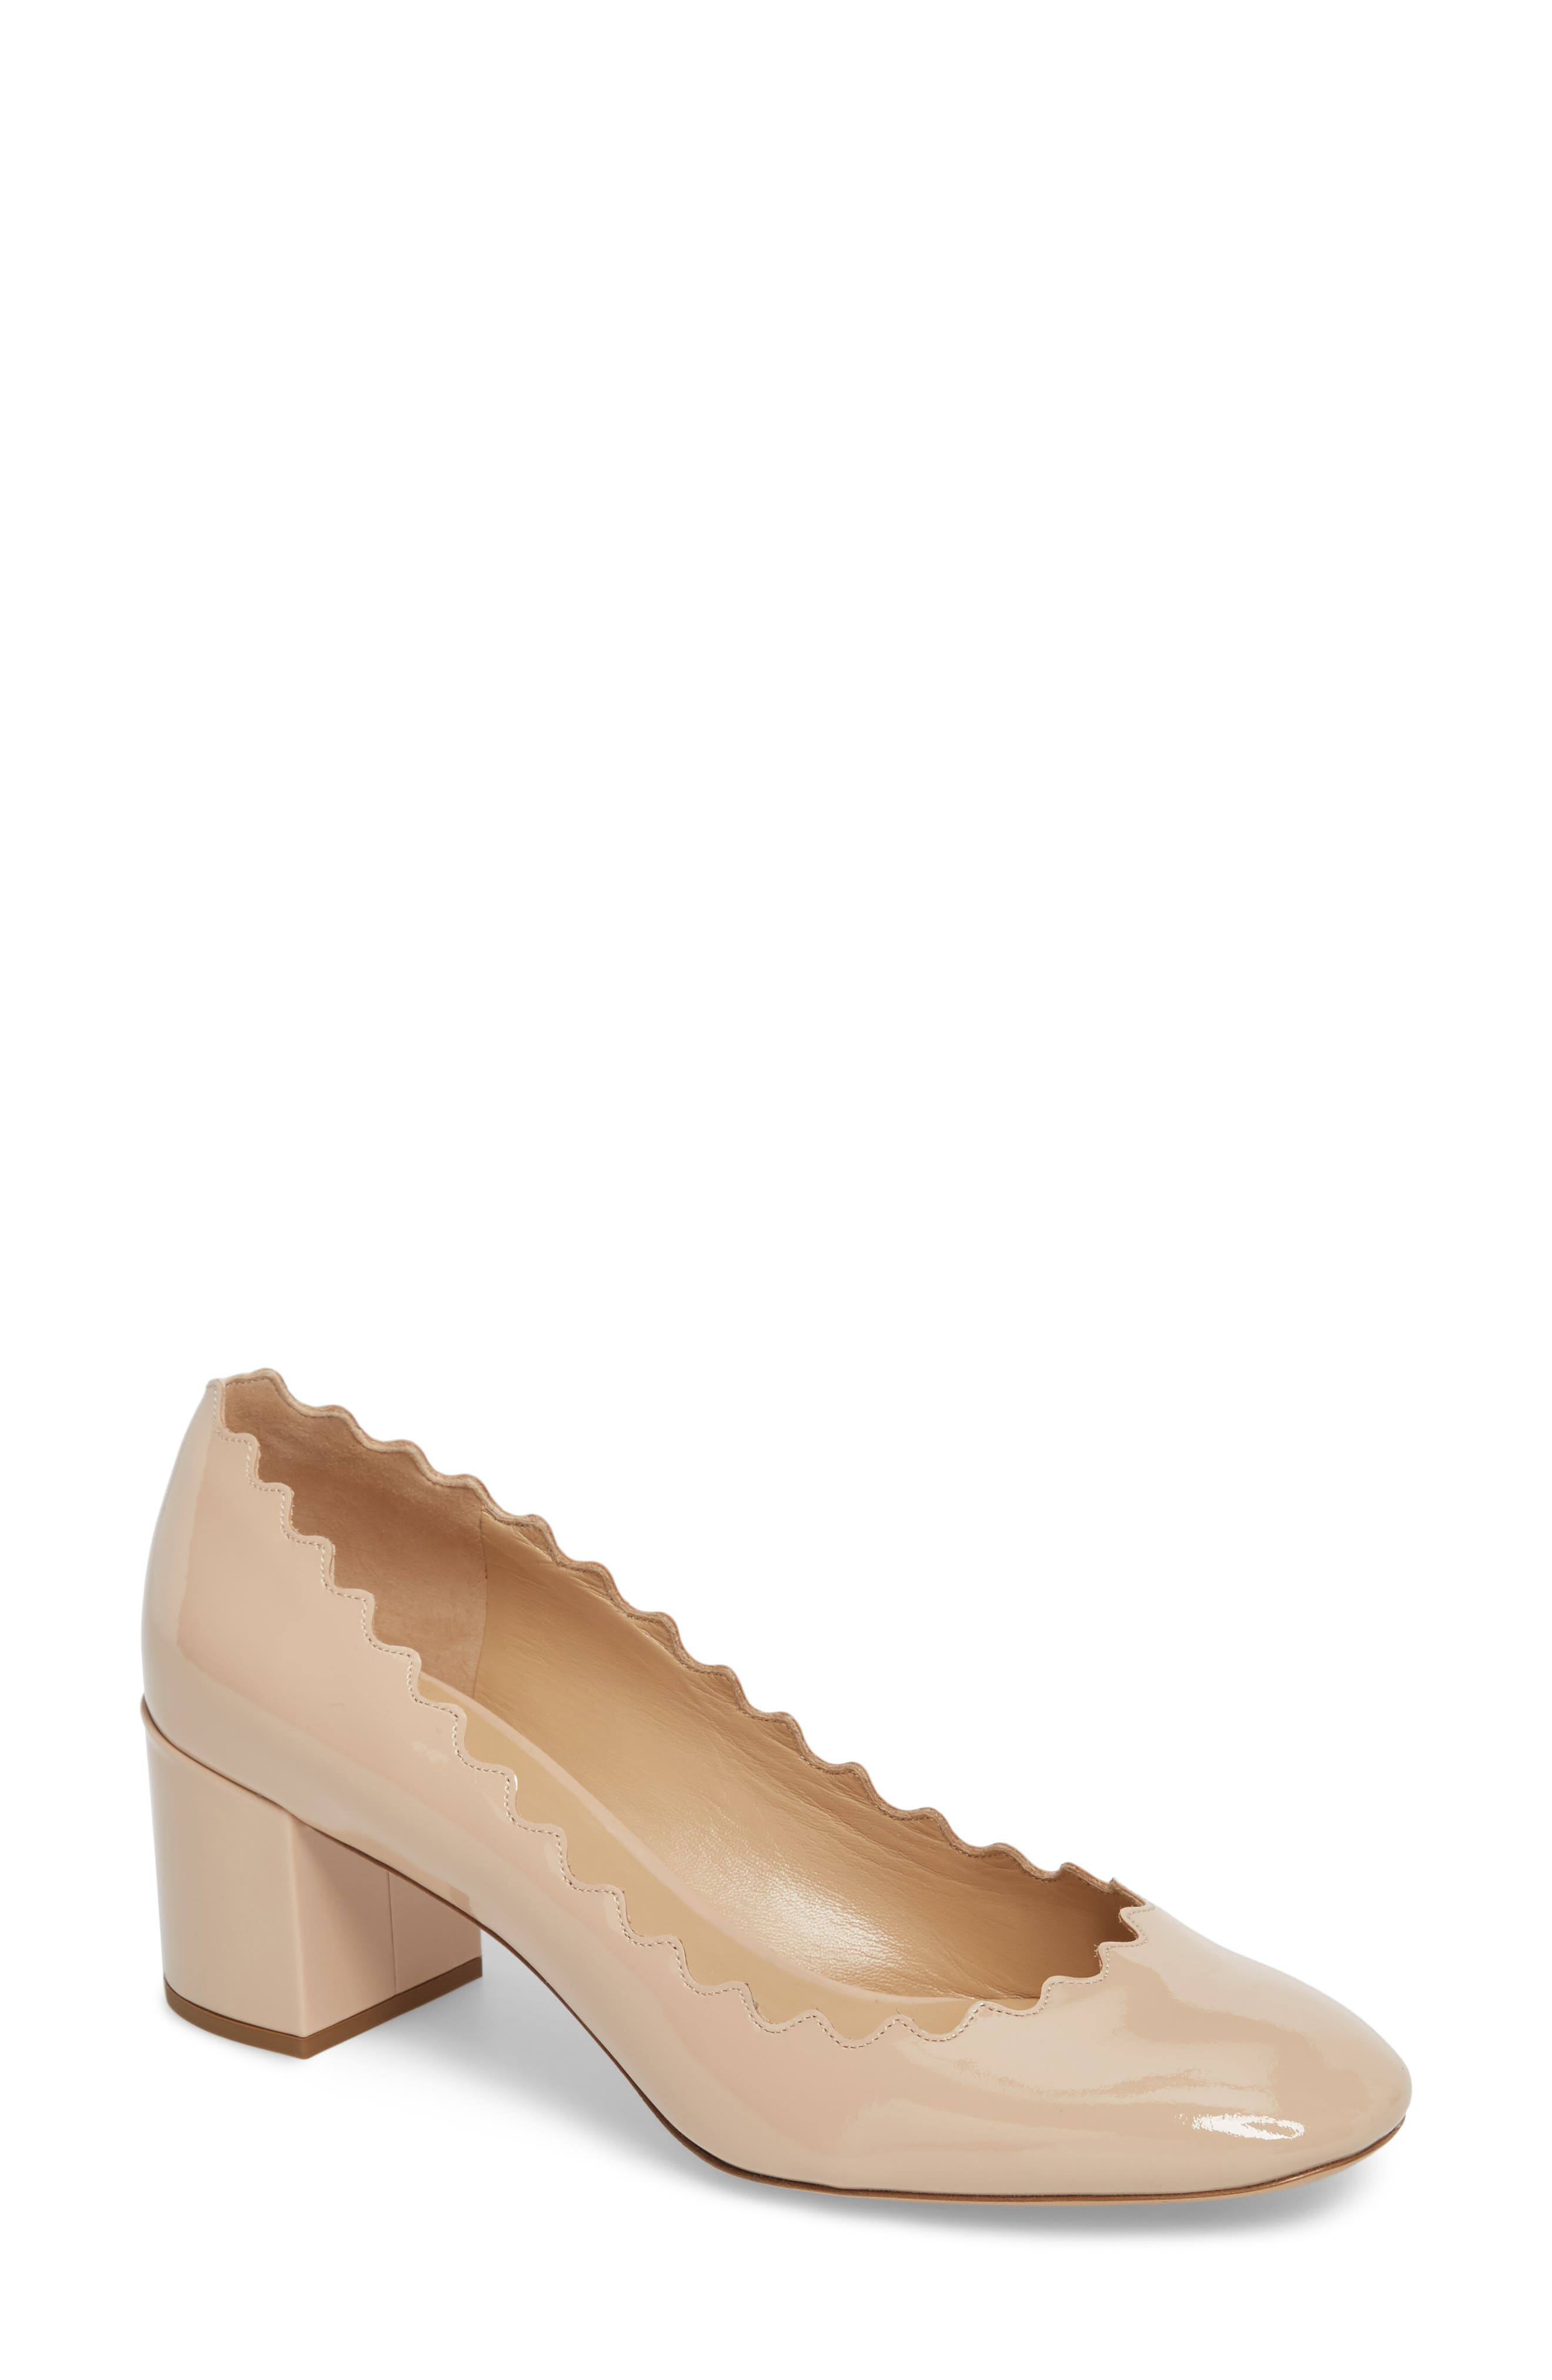 Lauren Pump,                         Main,                         color, Mild Beige Patent